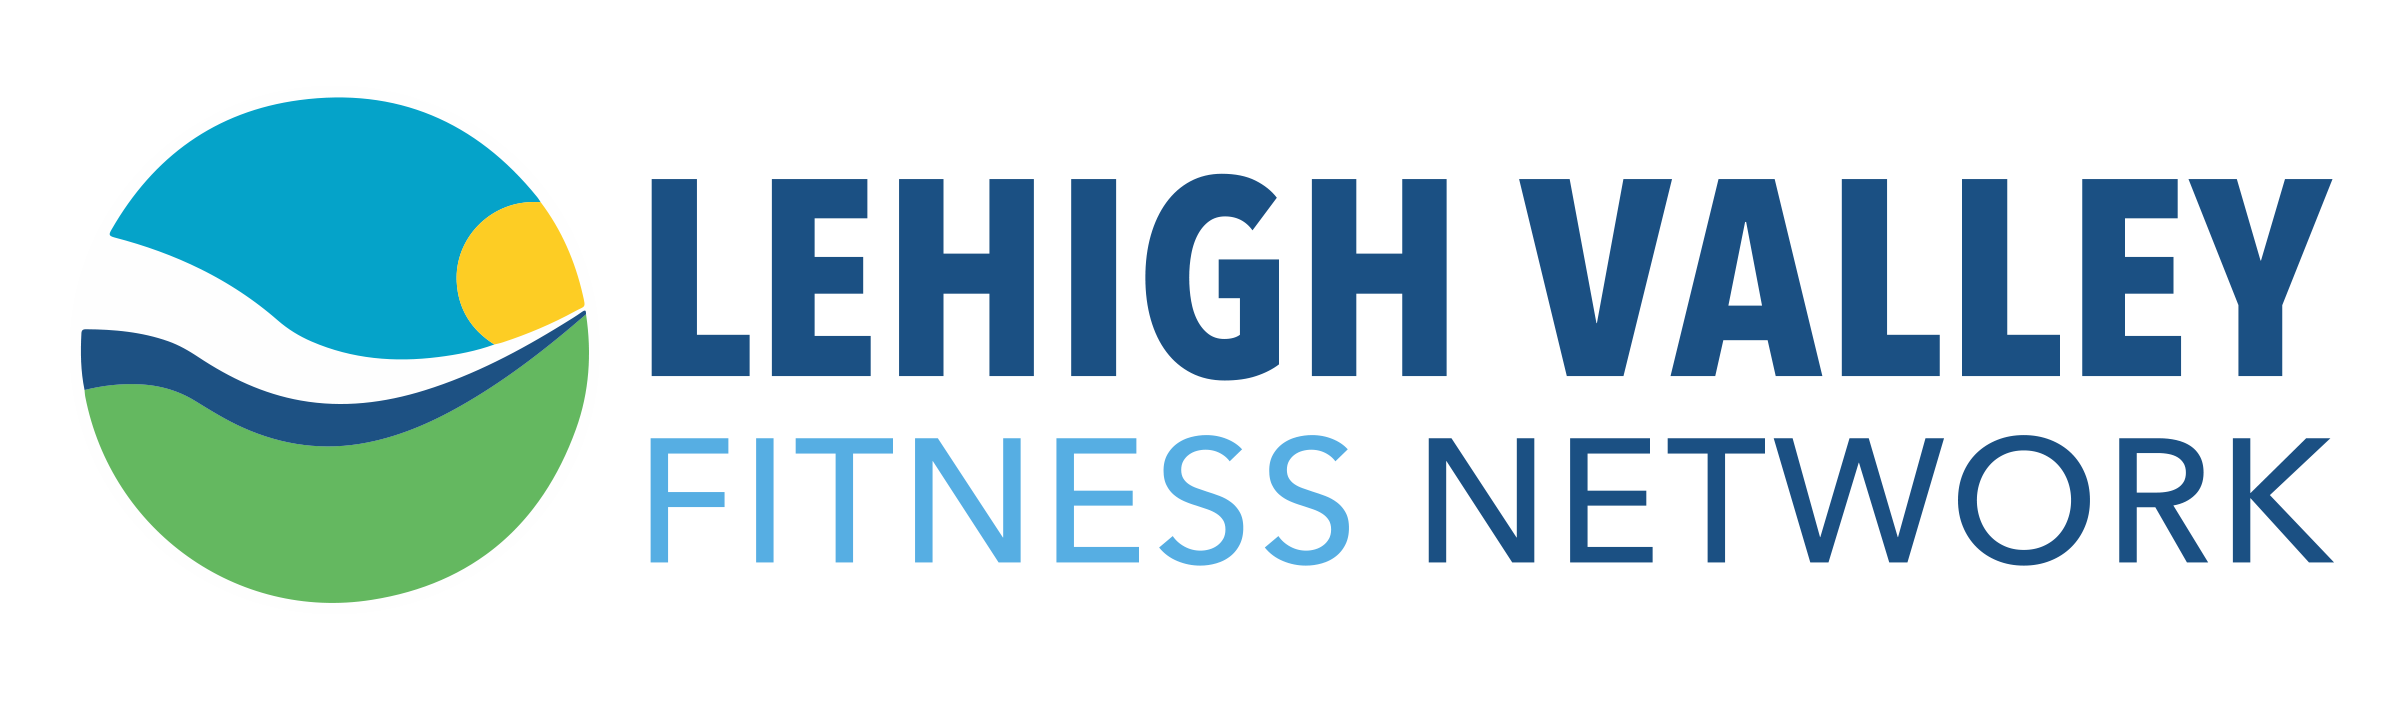 Lehigh valley health network logo png. Lvfn fitness wellness and